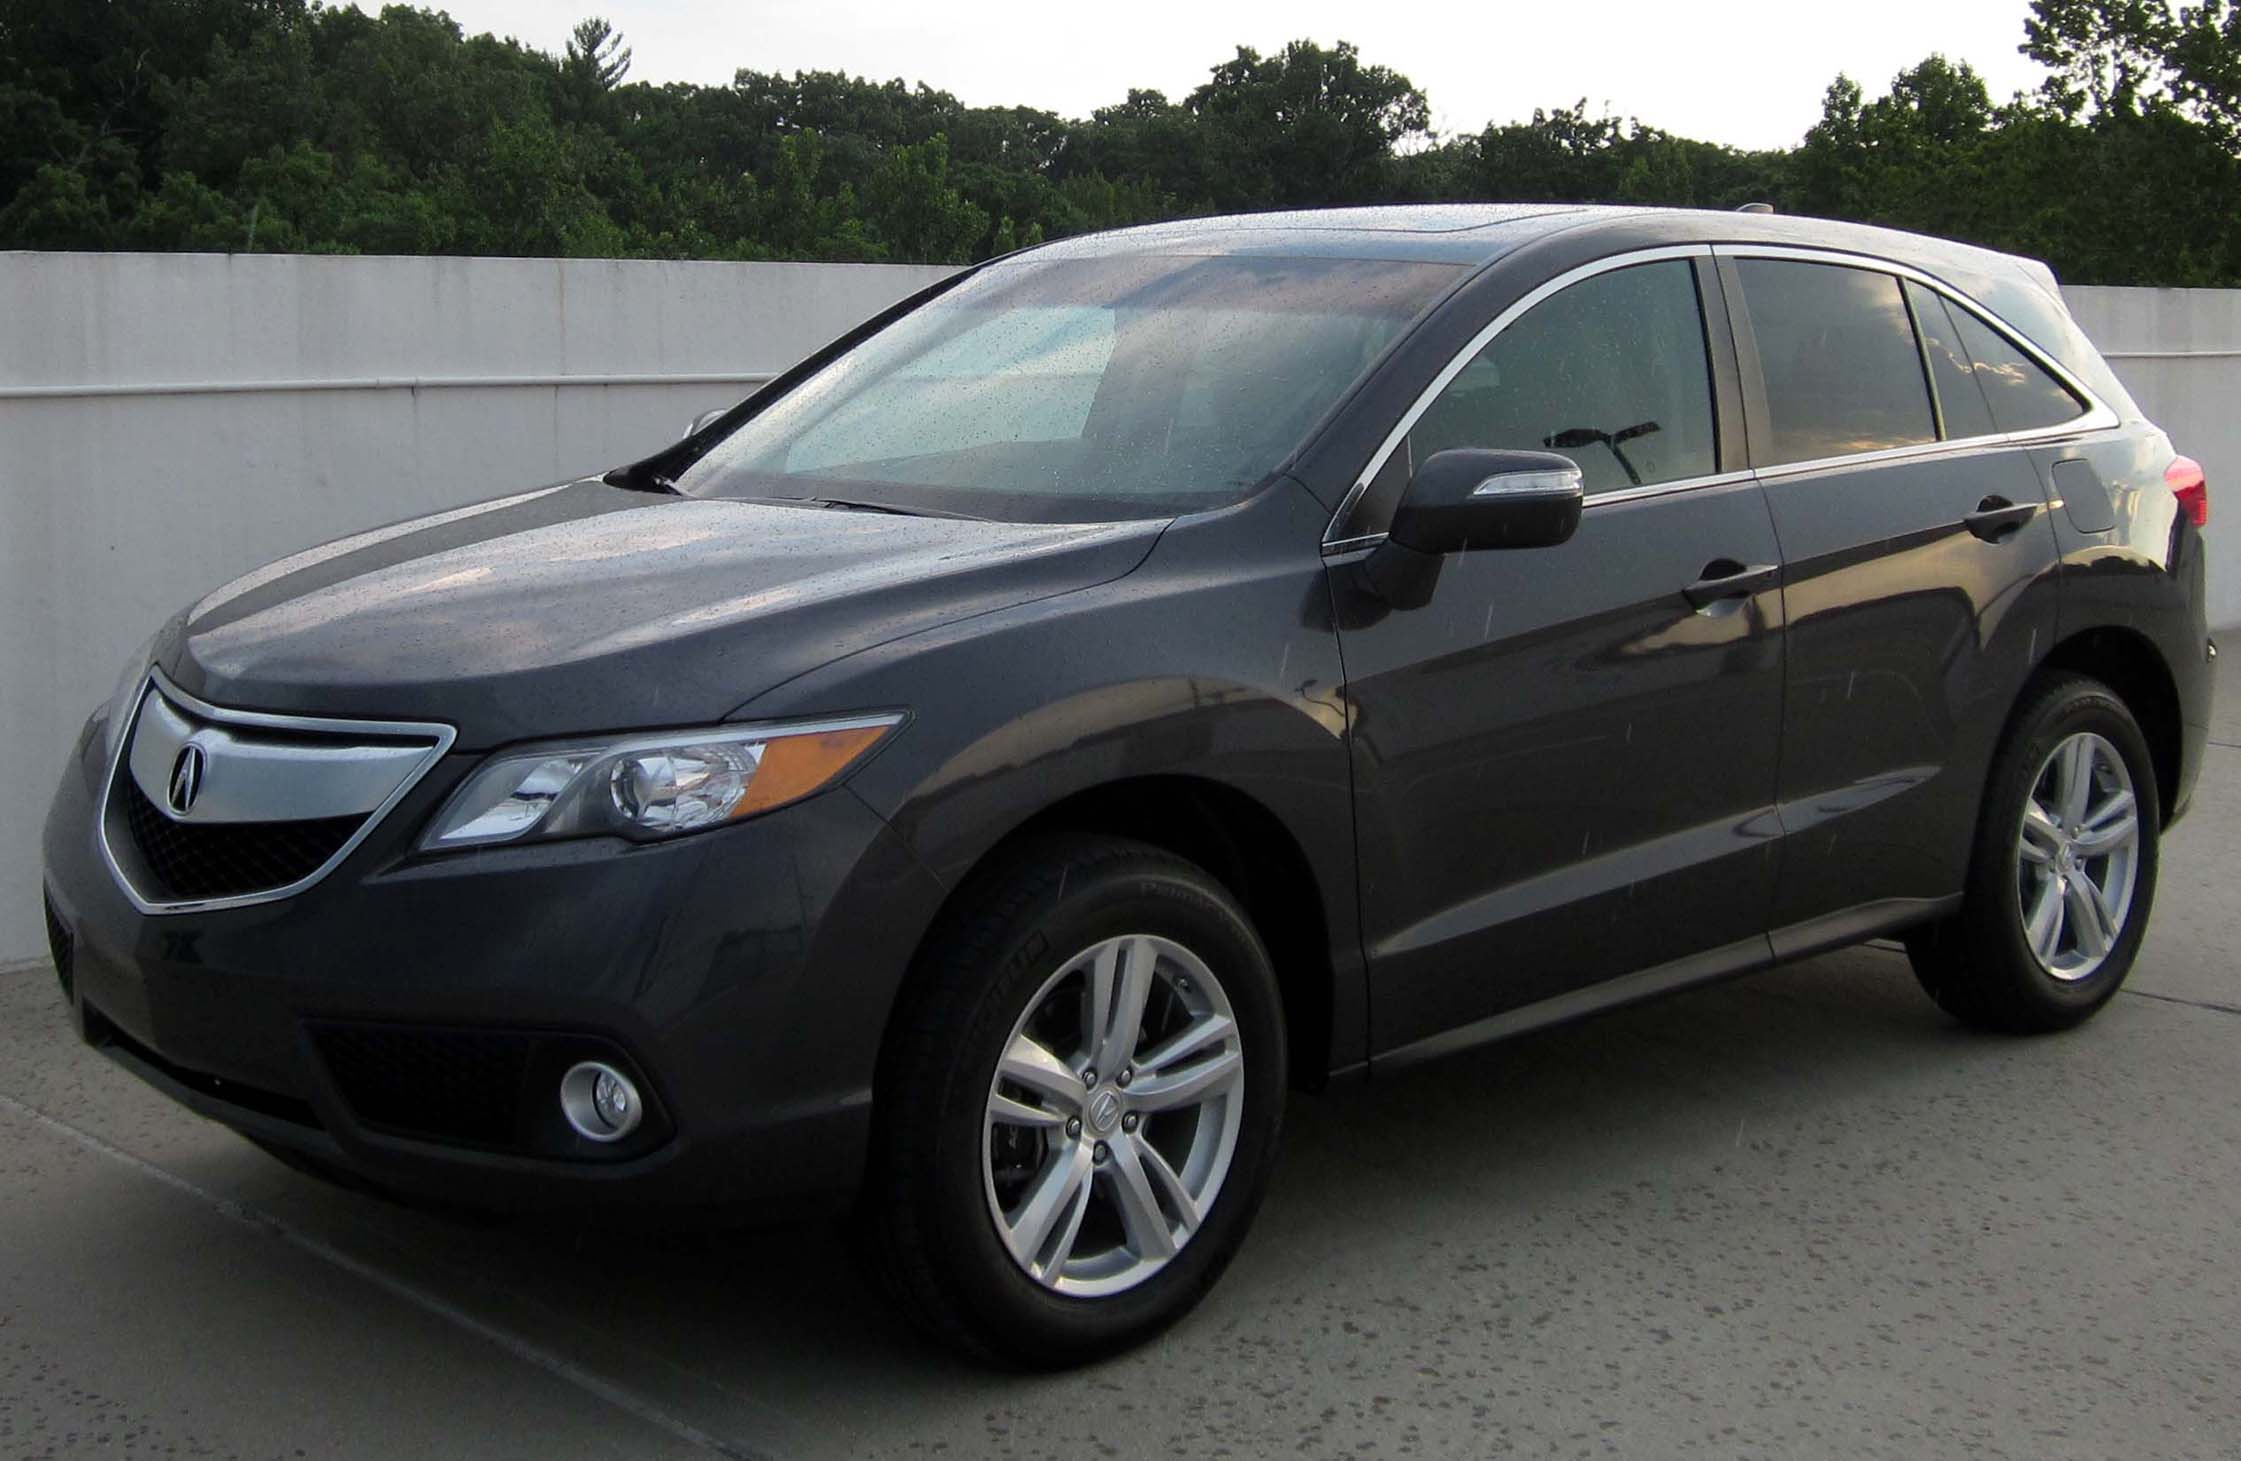 2013 acura rdx ii pictures information and specs auto. Black Bedroom Furniture Sets. Home Design Ideas